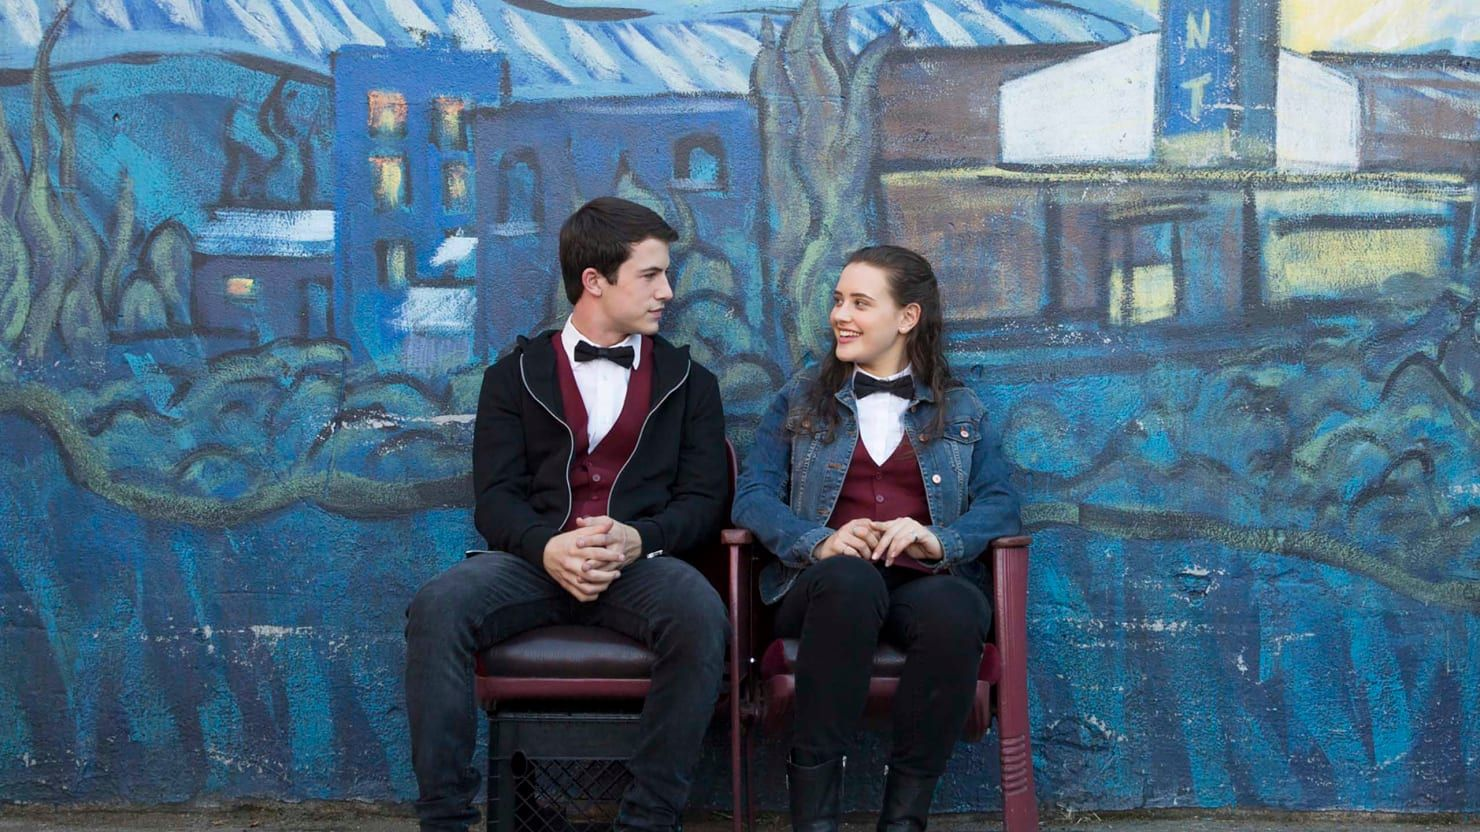 17 Best '13 Reasons Why' Quotes for TV and Book Fans